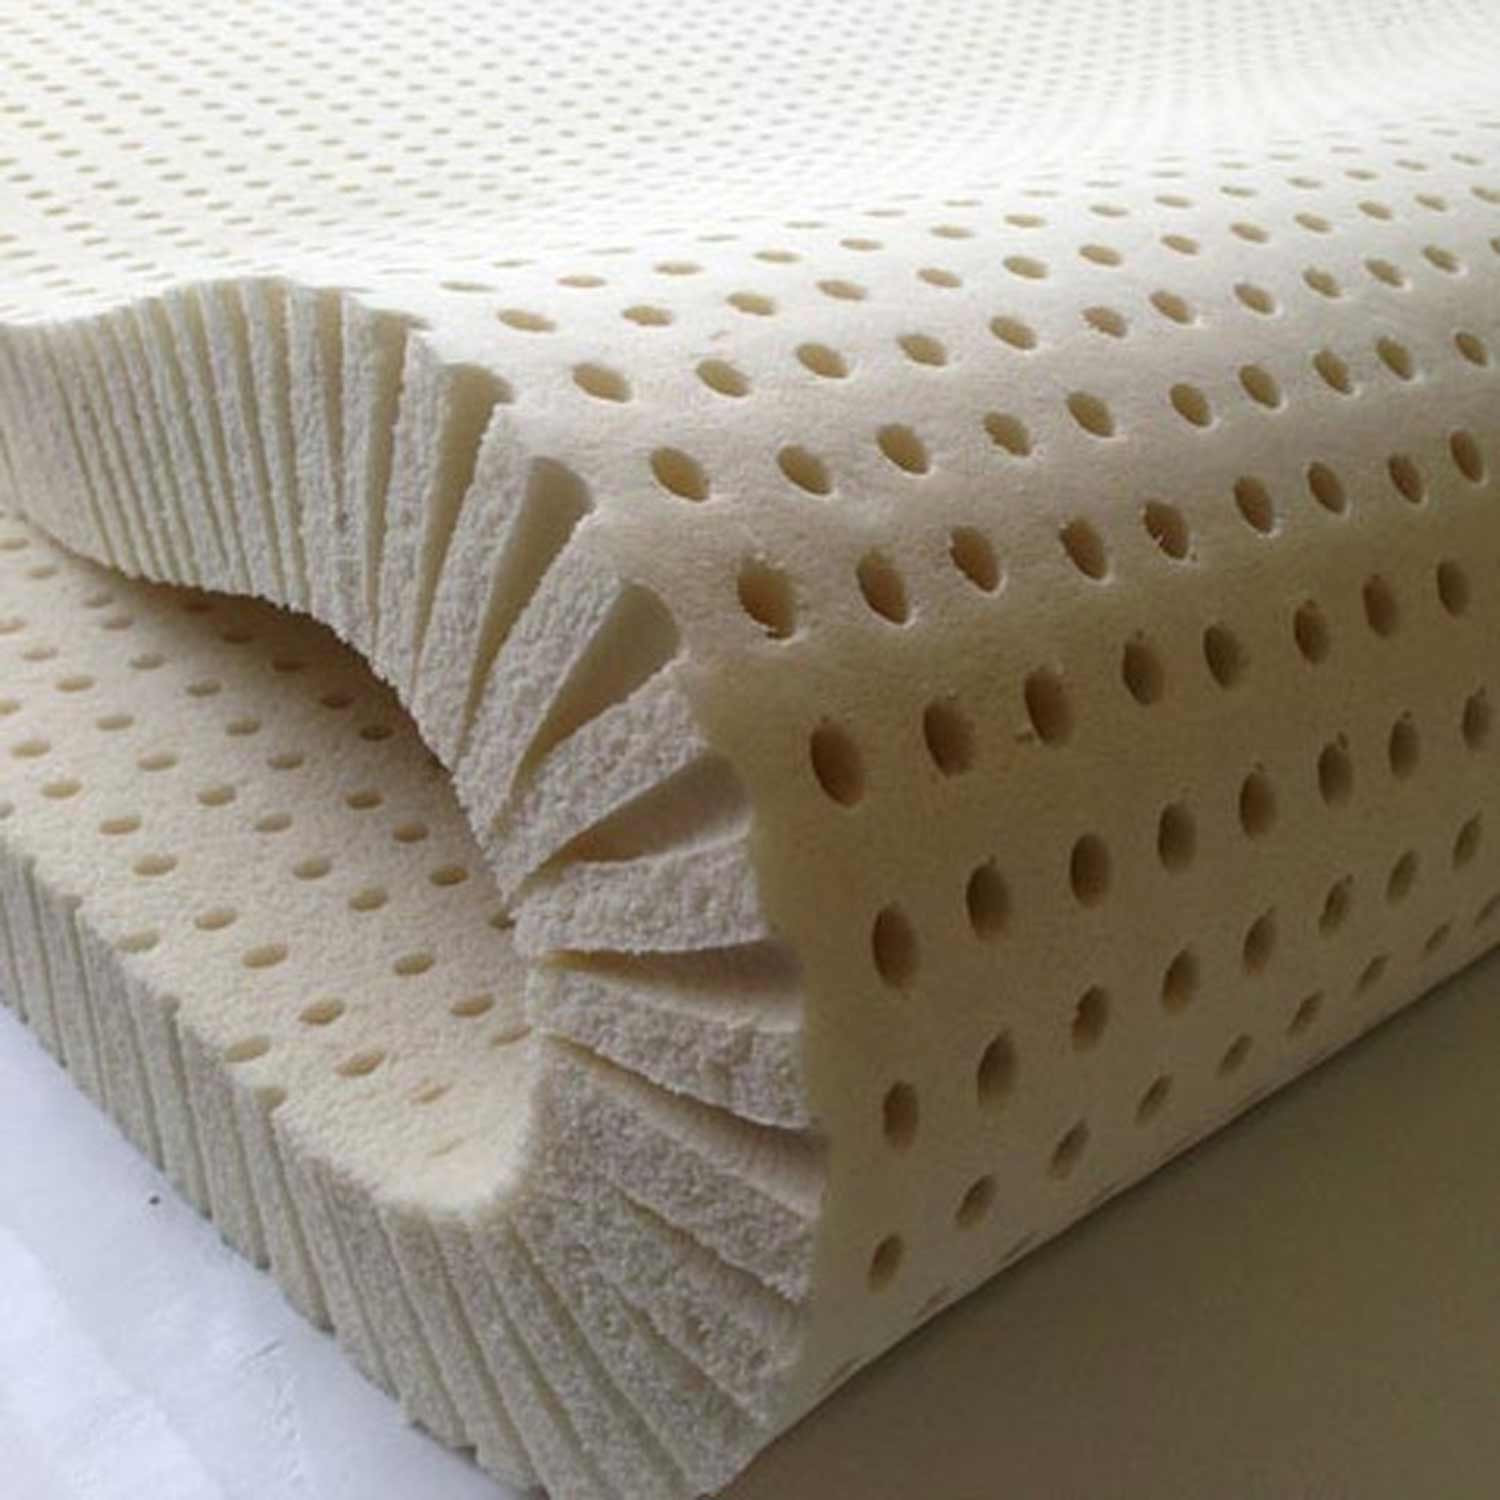 Foam Or Latex Mattresses Mattress Comfort Layers Mattresshelp Org